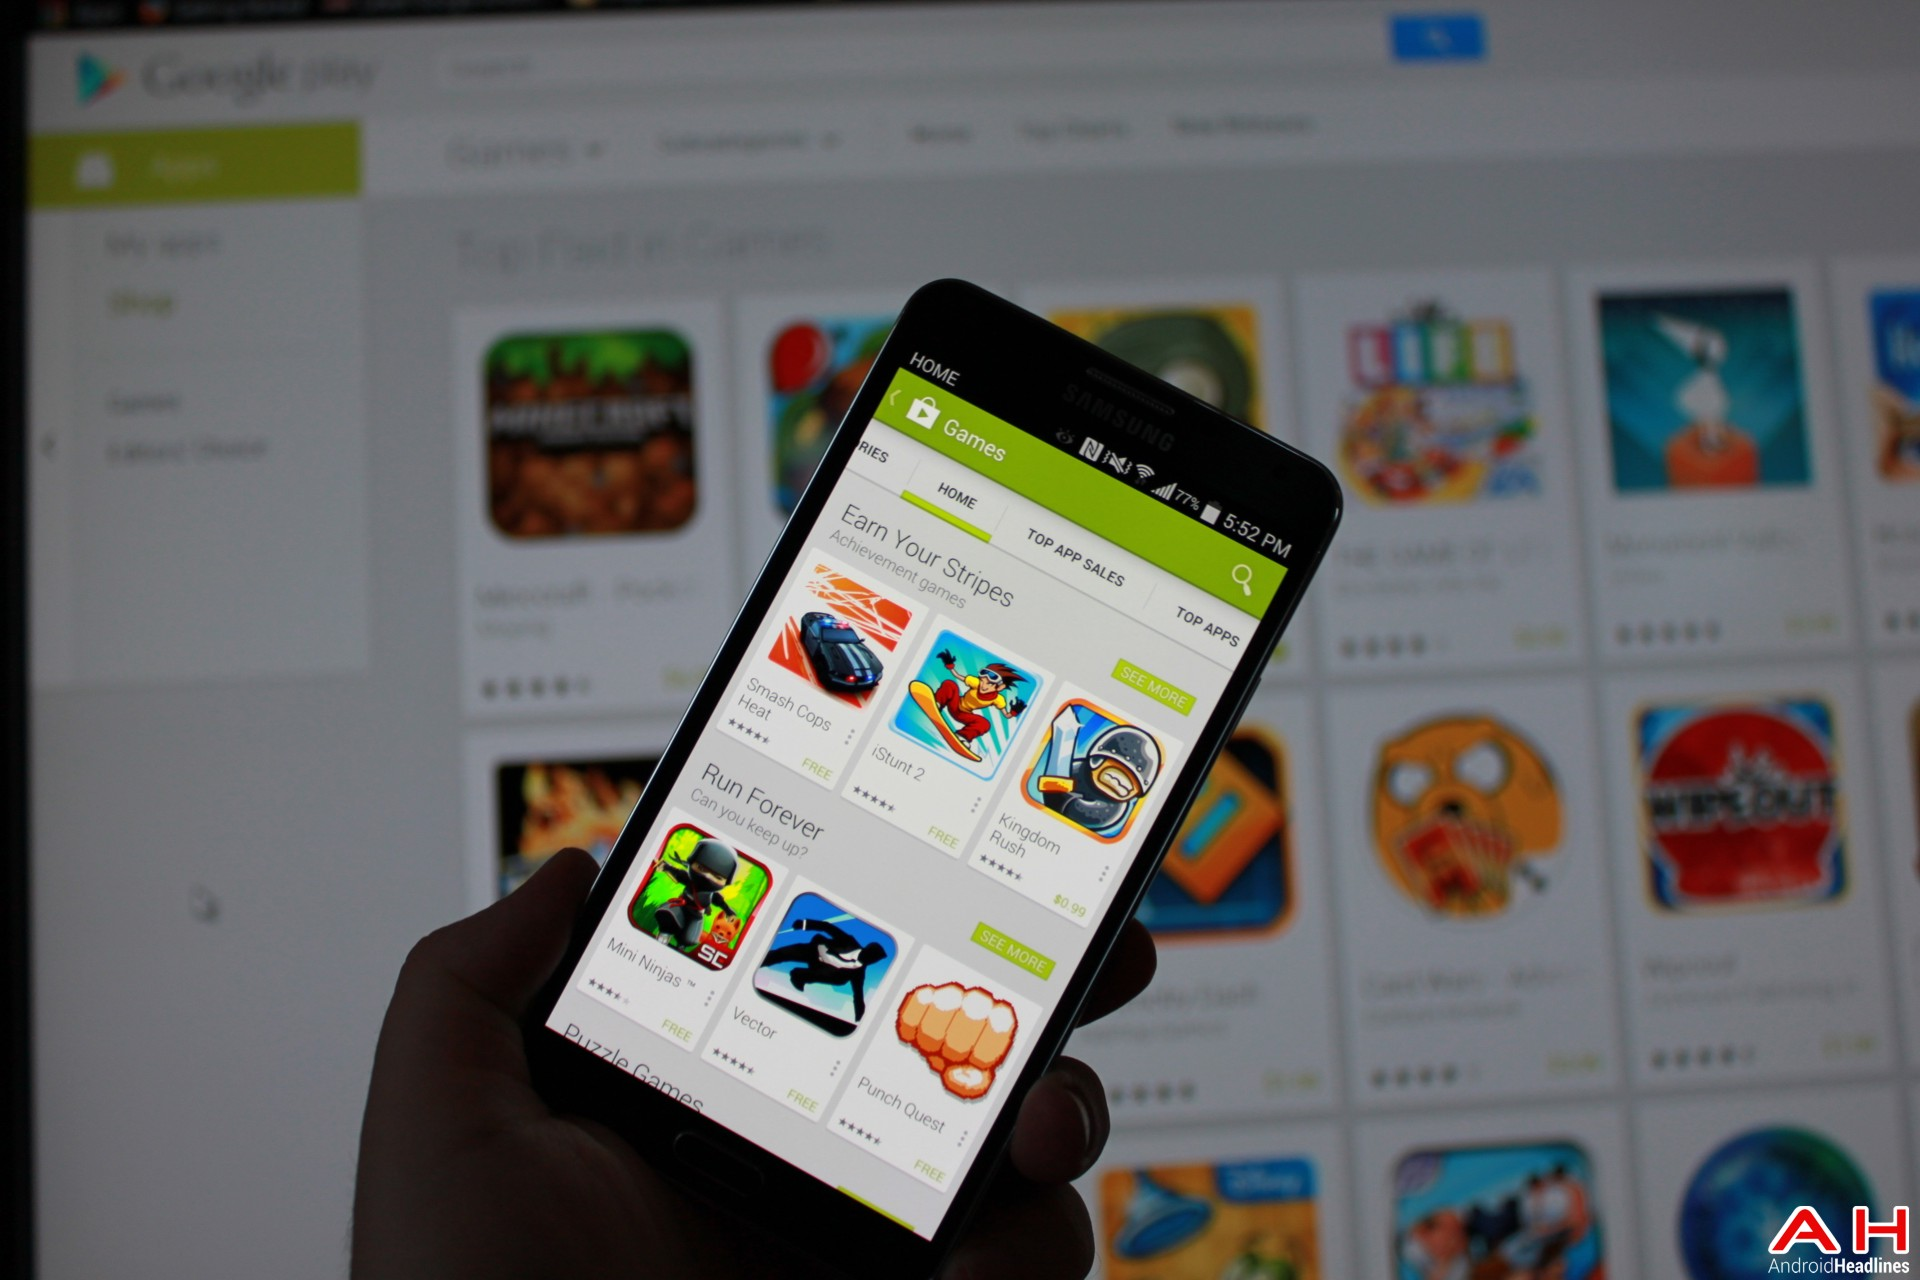 AH Google Play App Store Game of the week top 10 games android 1.3